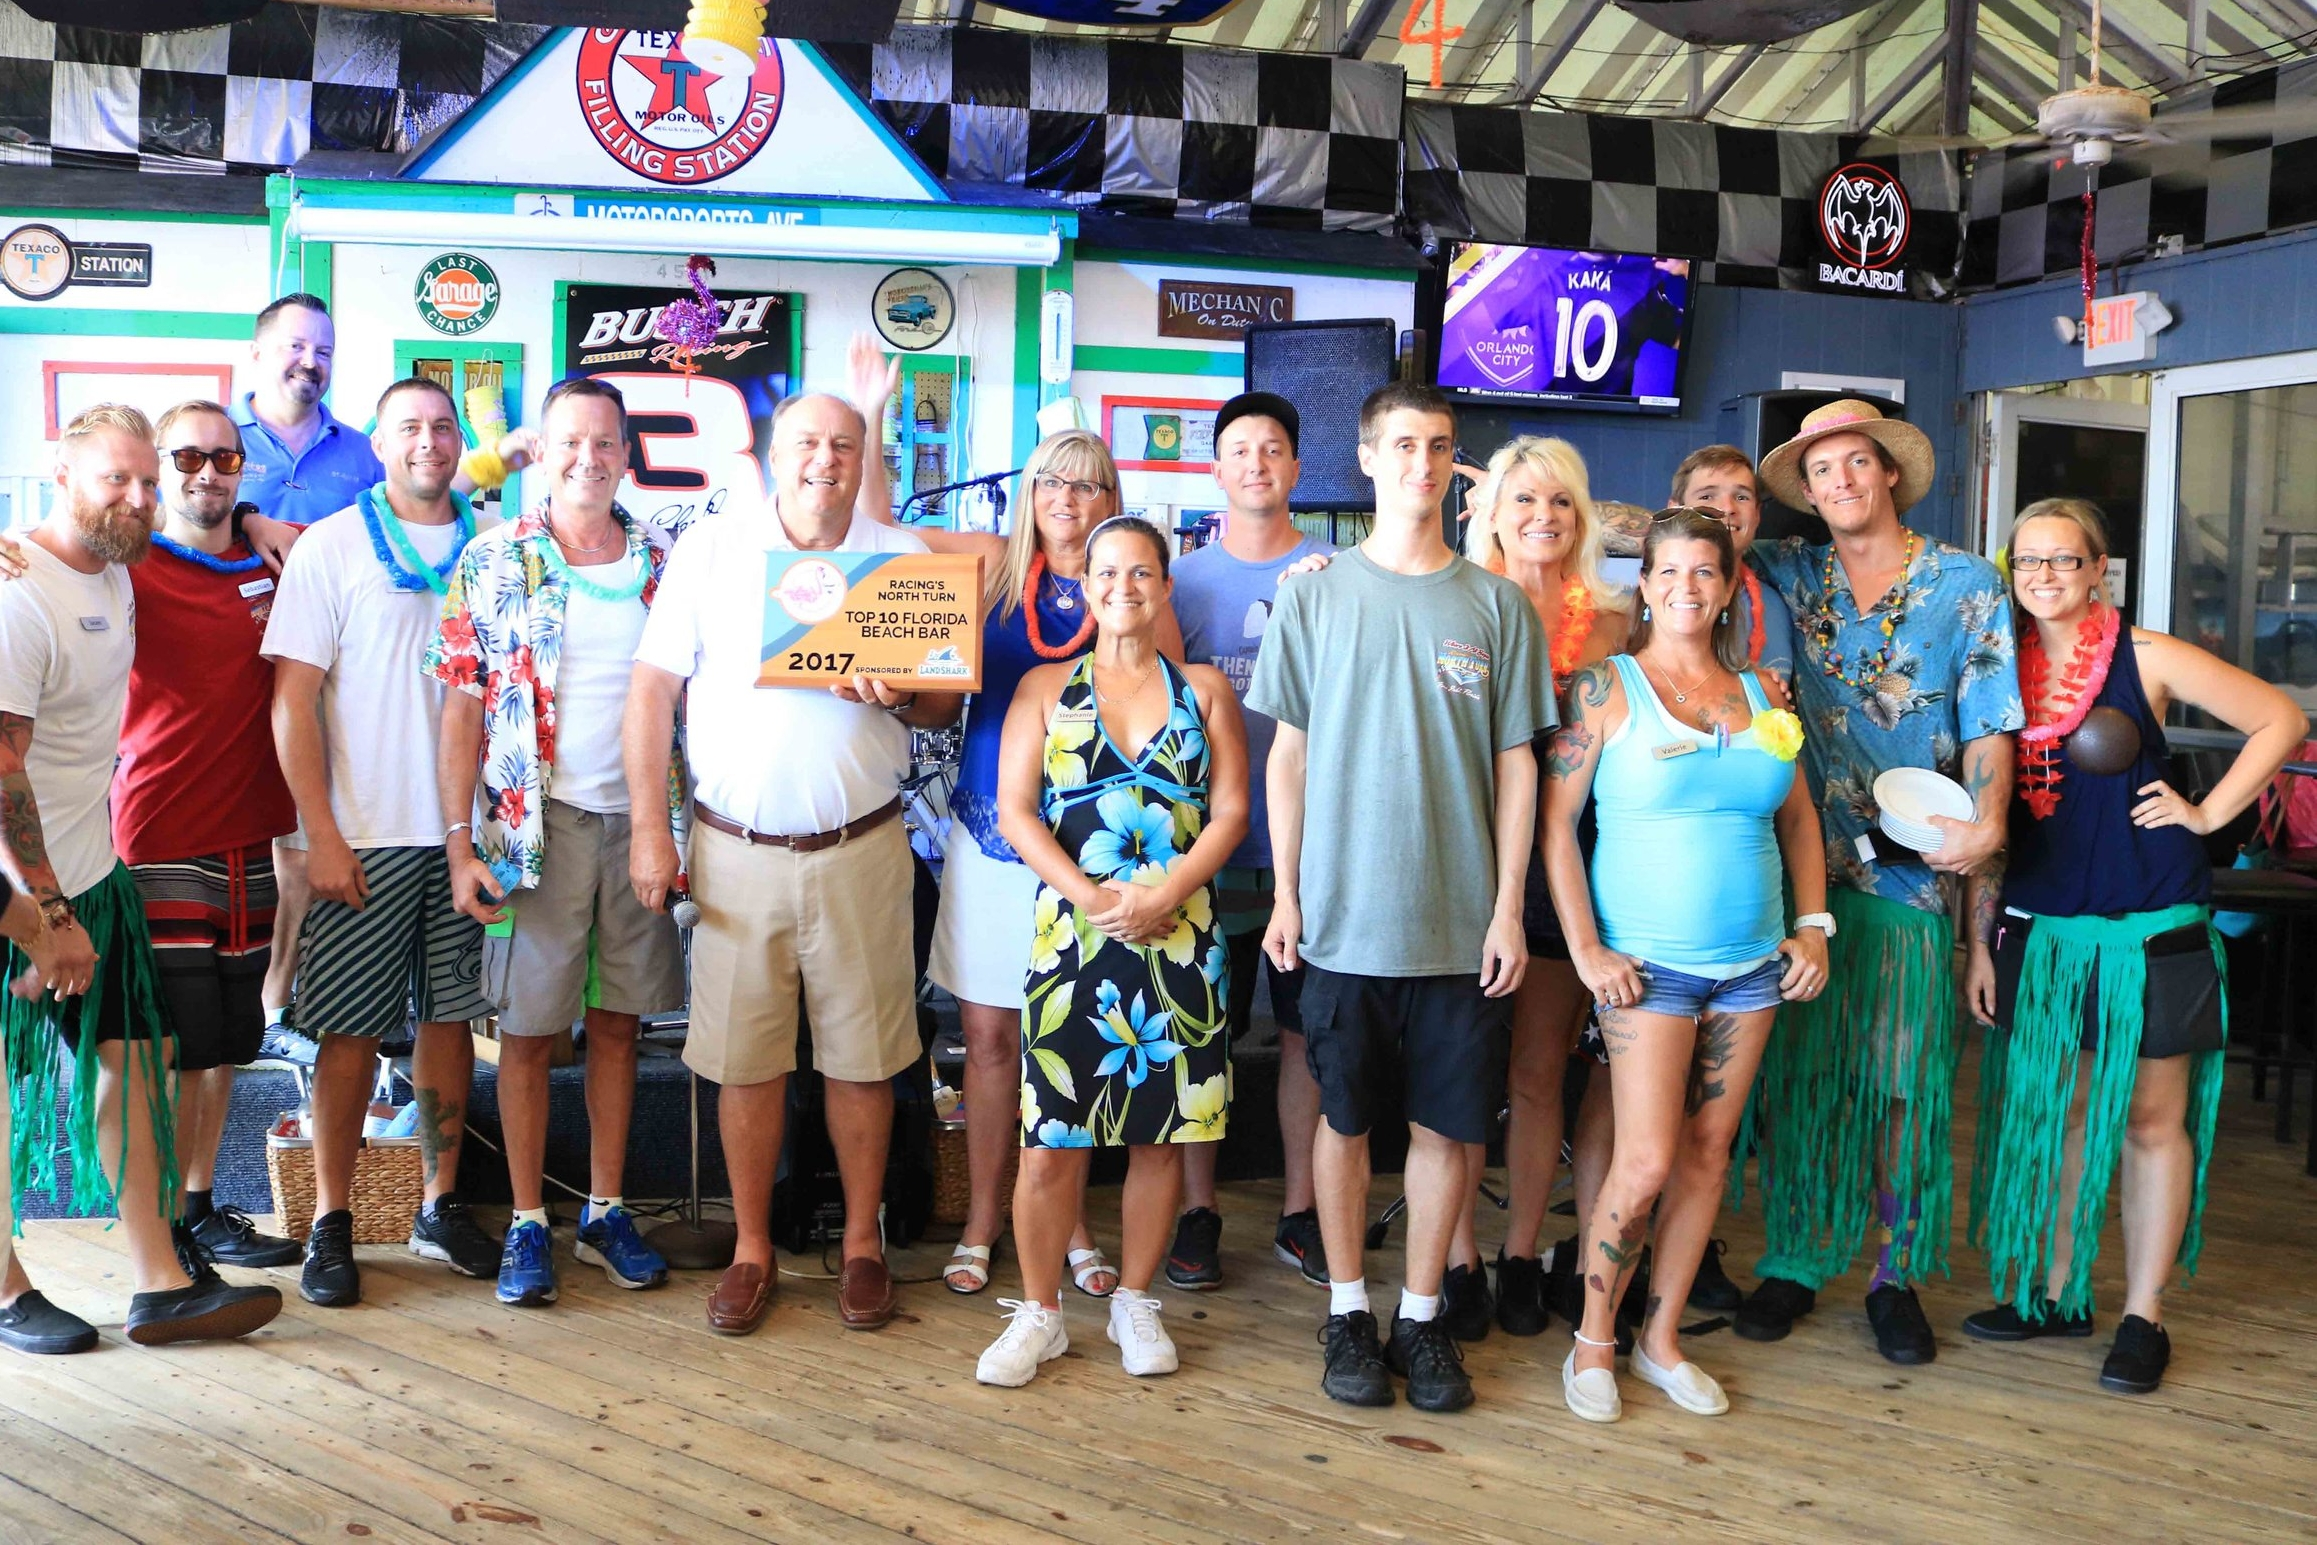 The staff of Racing's North Turn pose with the 2017 Florida Beach Bar award